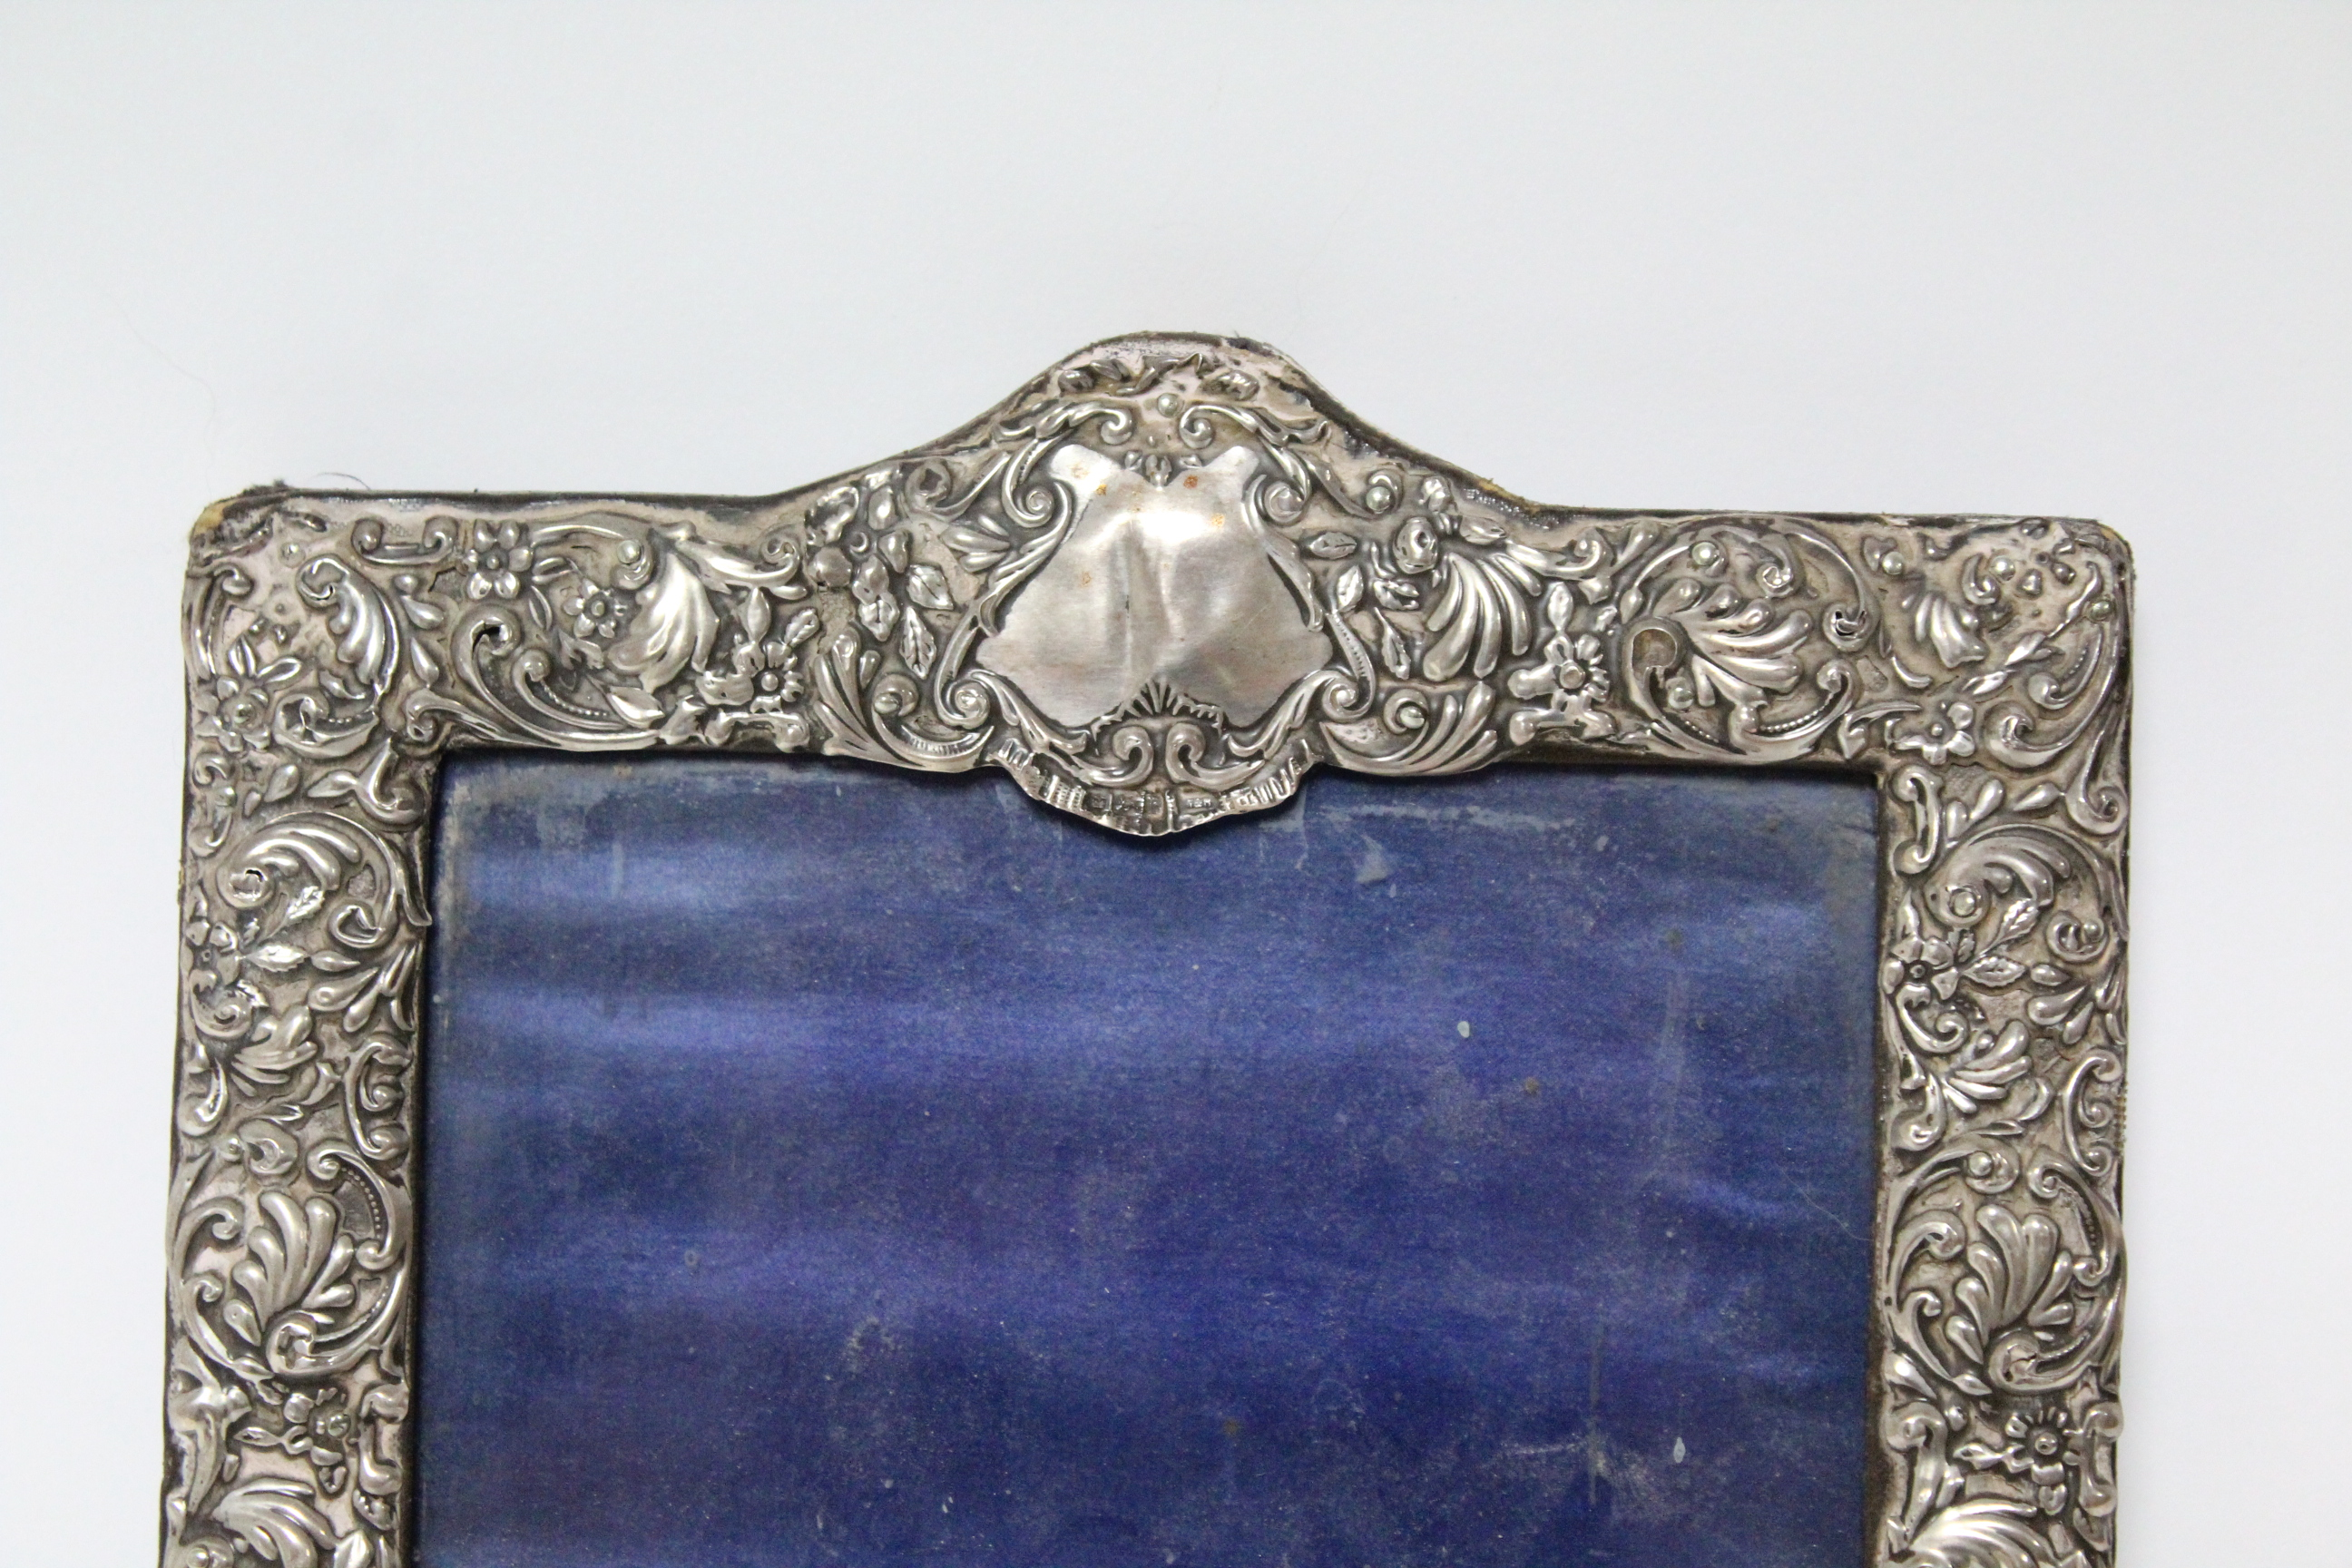 A late Victorian rectangular photograph frame with all-over embossed floral decoration, Sheffield - Image 2 of 3